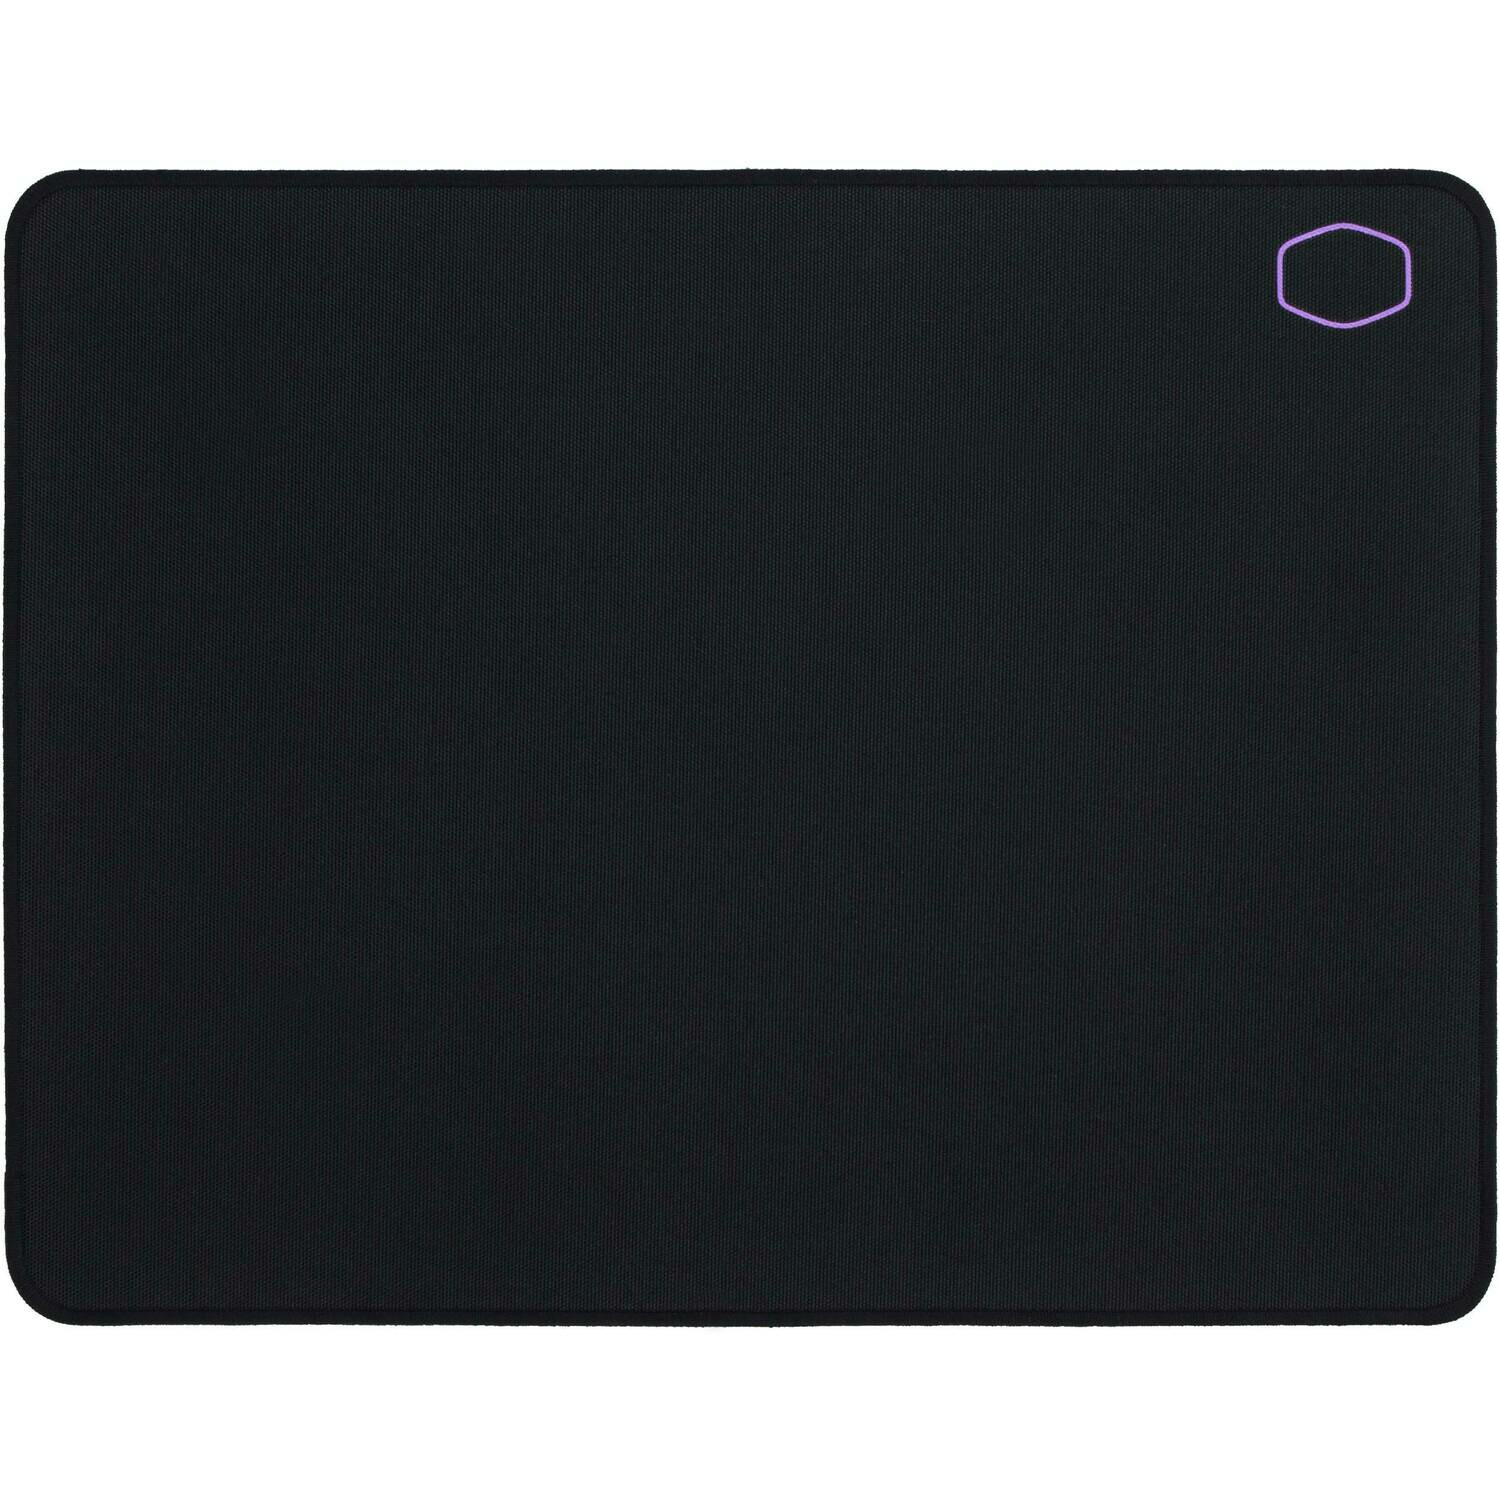 Mousepad Coolermaster MP510 tamaño